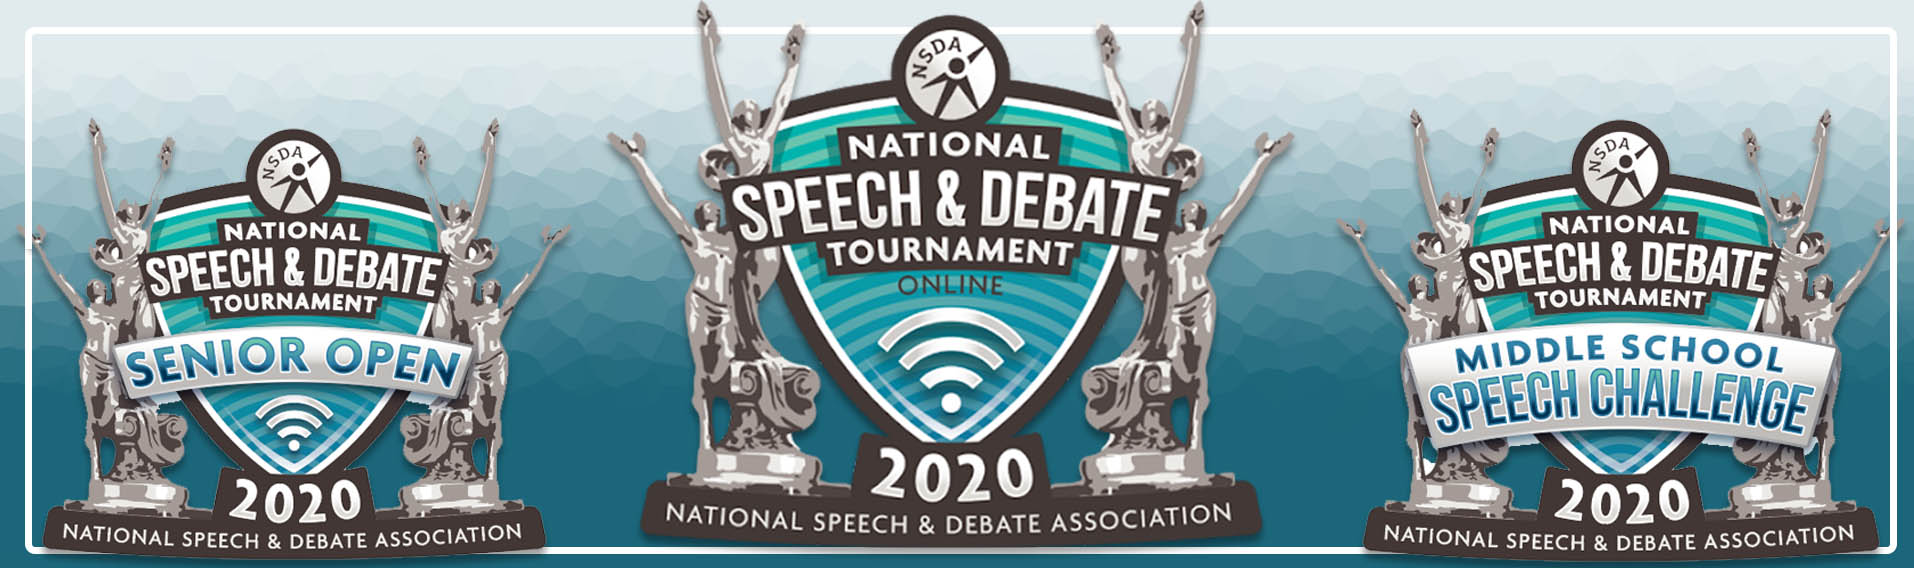 National Speech and Debate Online Tournament 2020